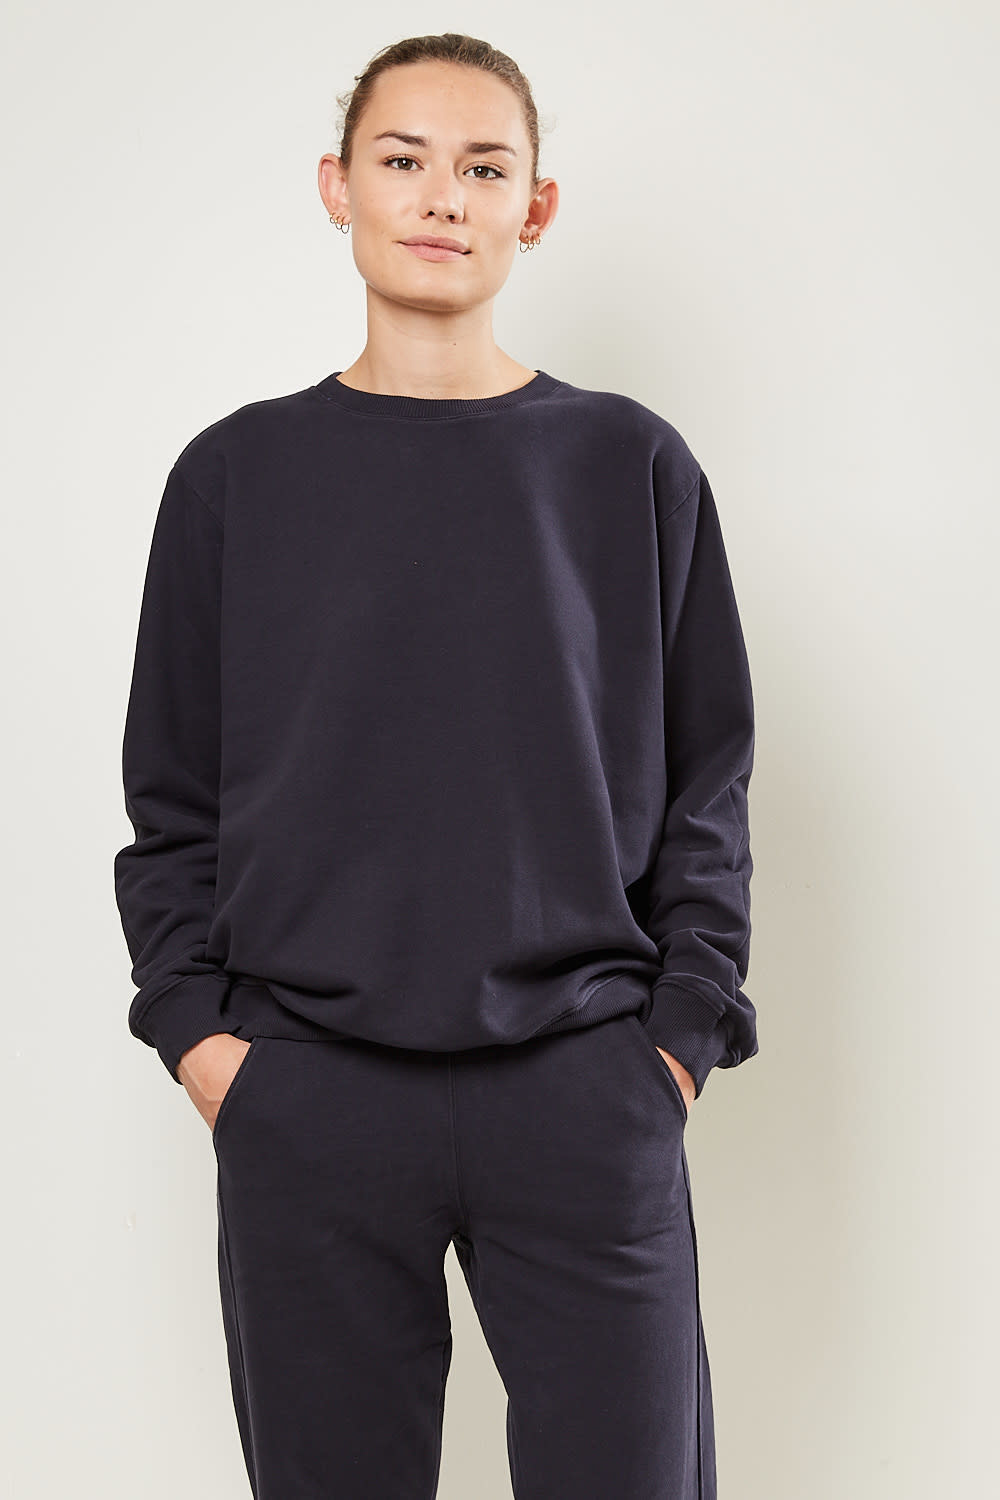 Humanoid Trixy sld tanner sweater